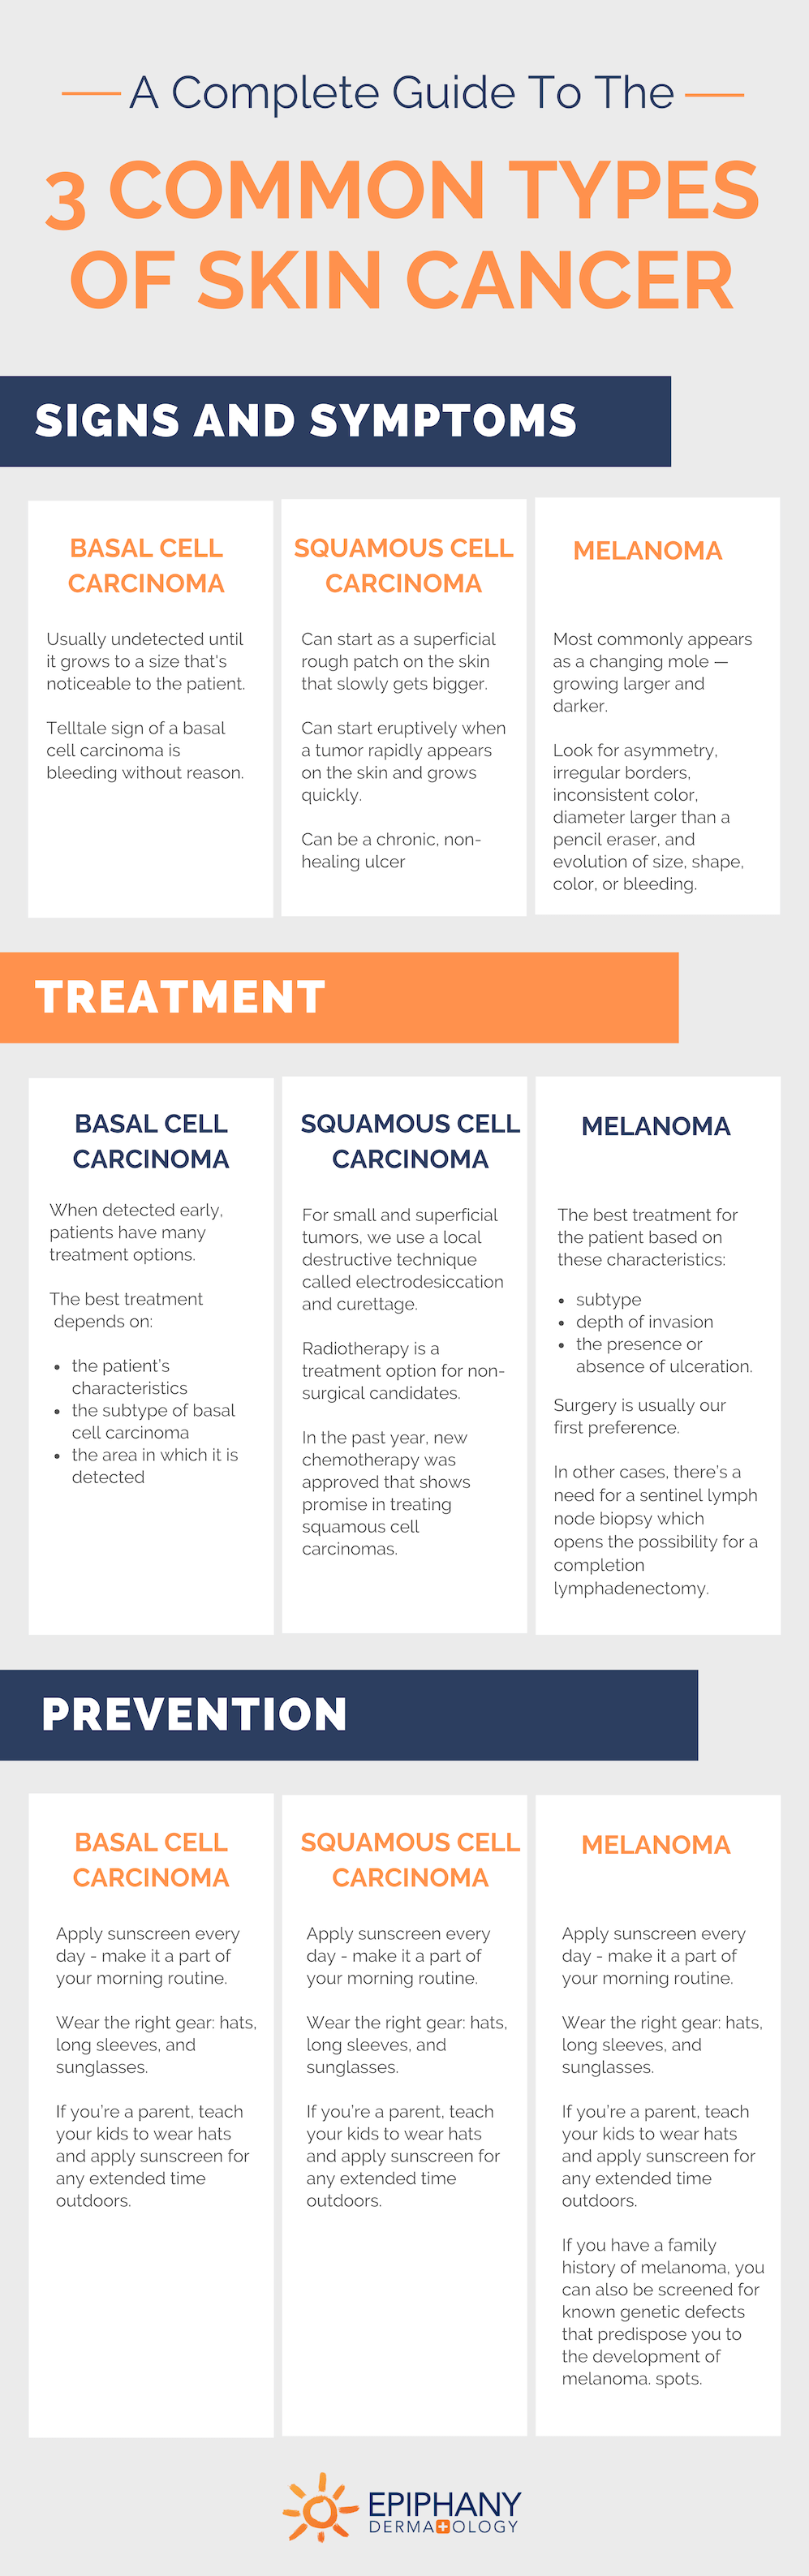 types of skin cancer compared